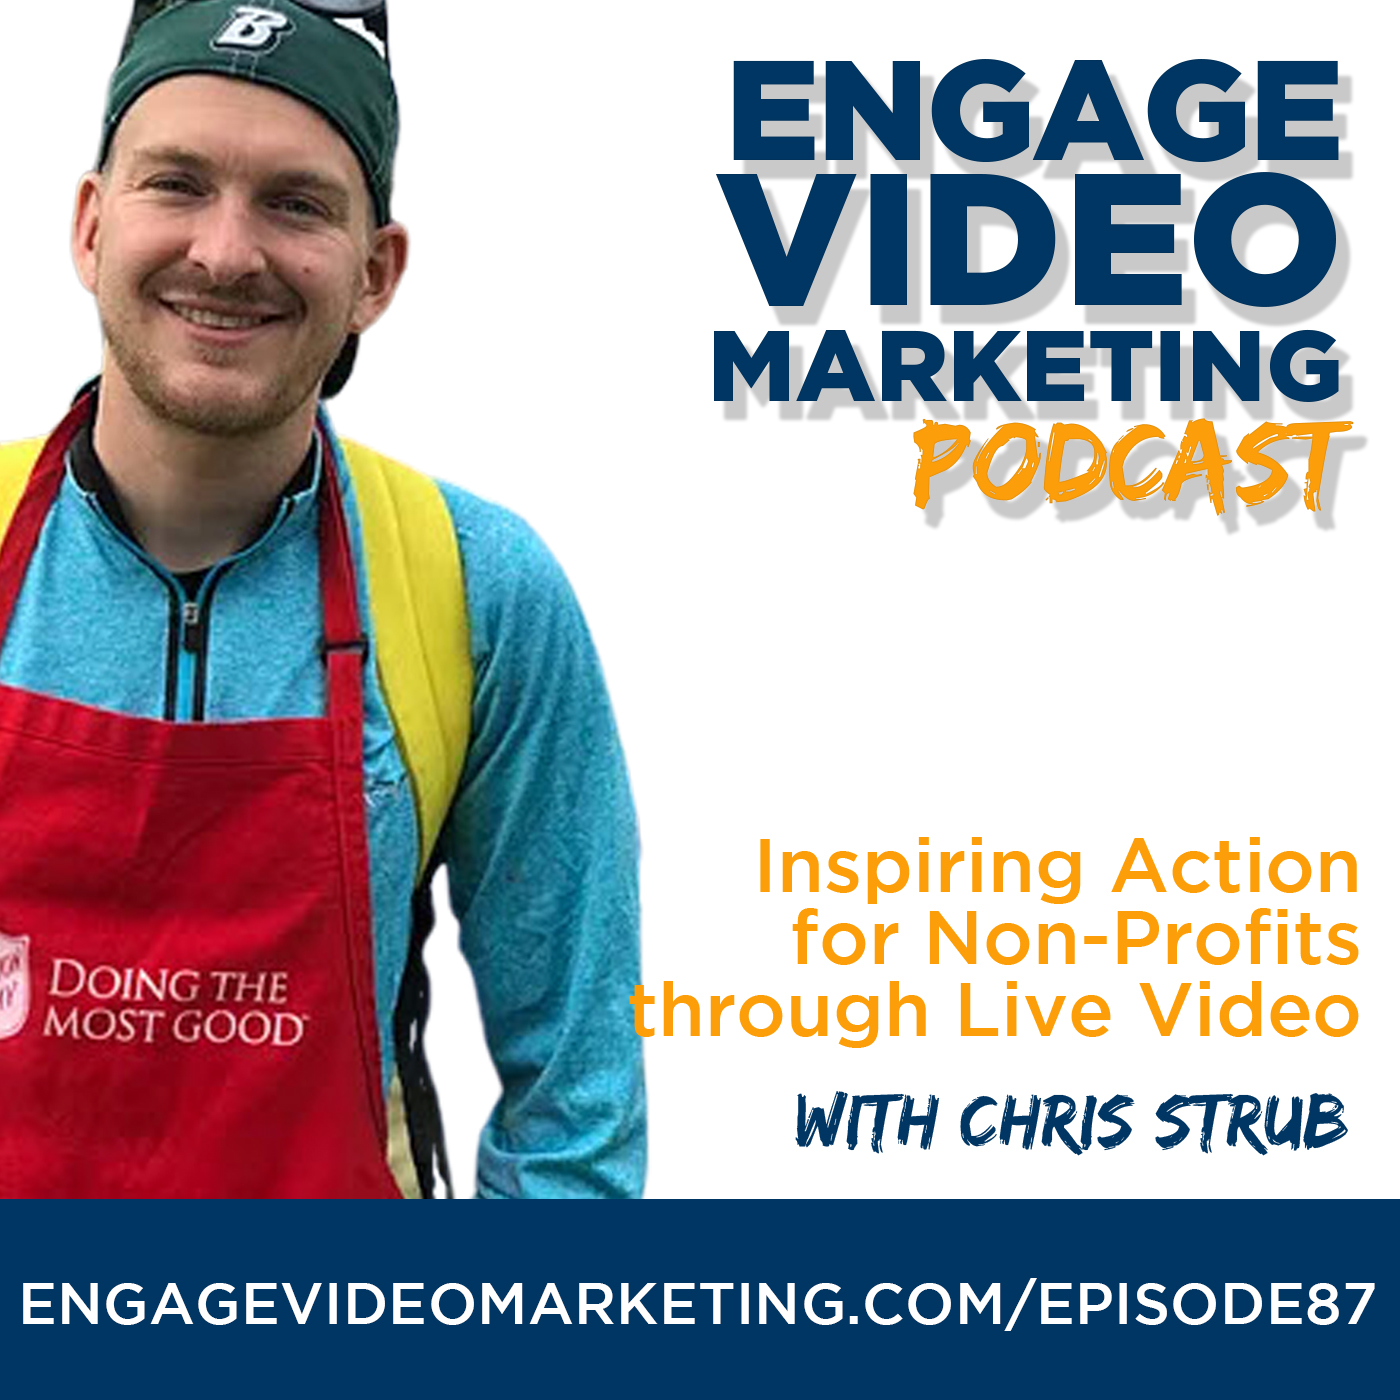 Inspiring Action for Non-Profits through Live Video with Chris Strubb